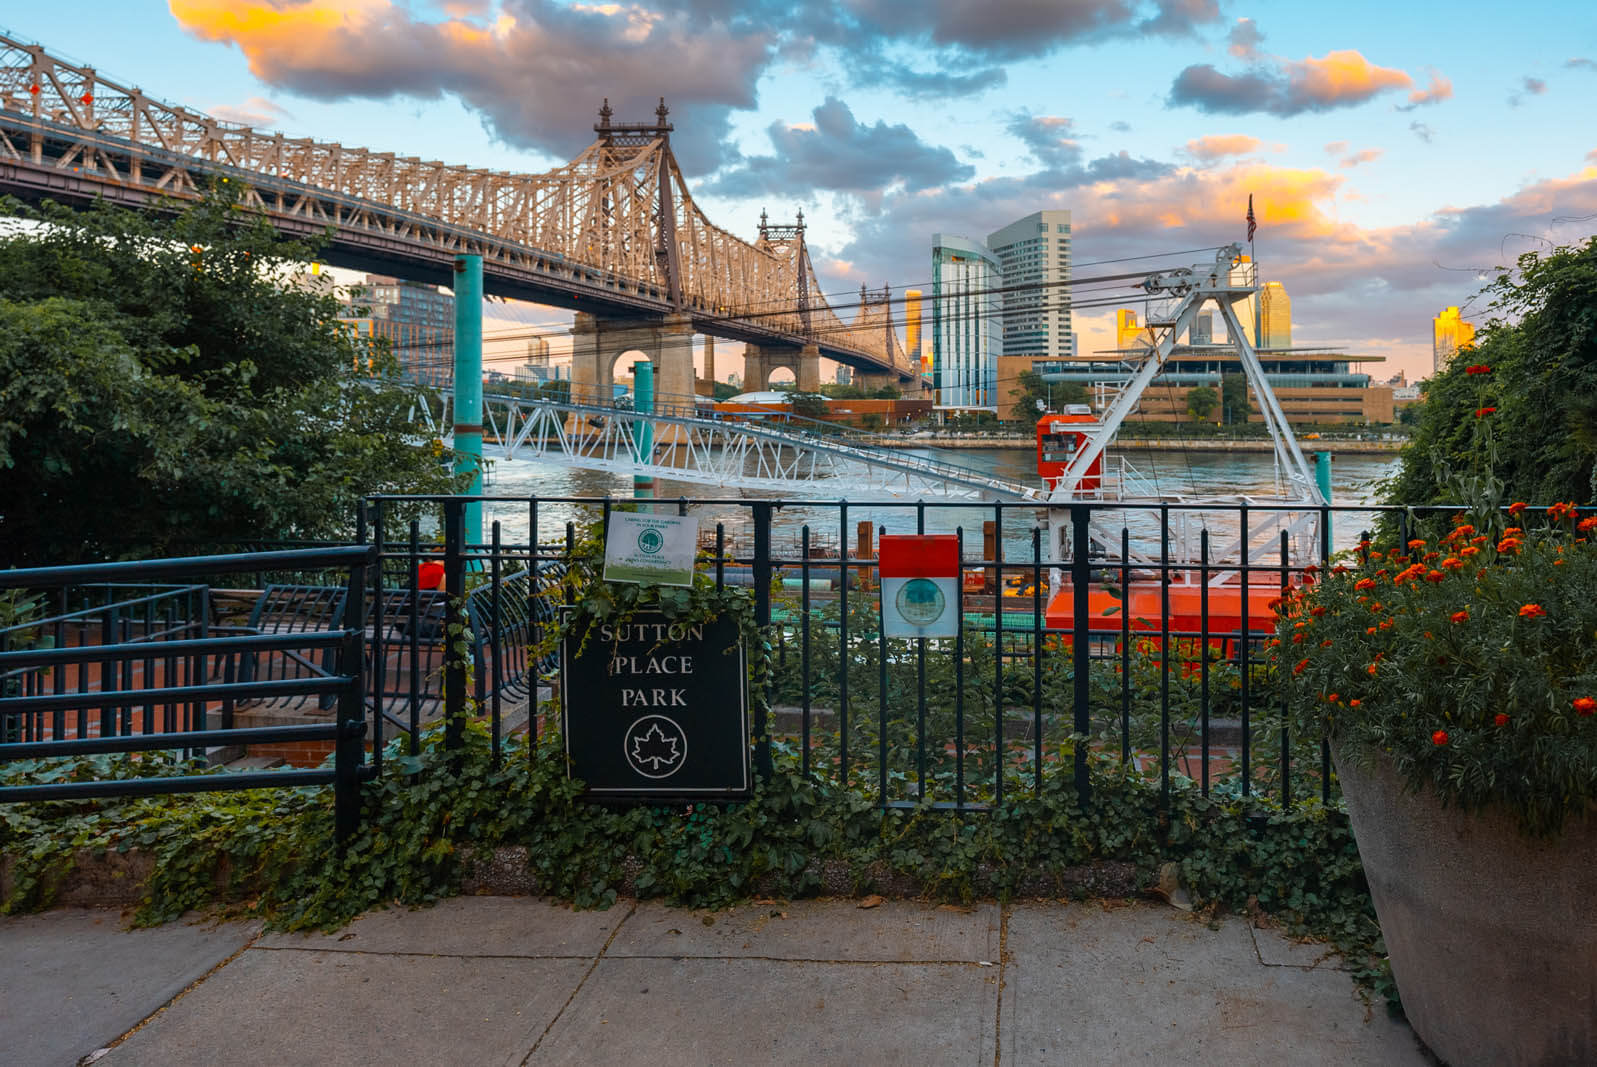 view of the Queensboro Bridge from the hidden Sutton Place Park in Manhattan NYC